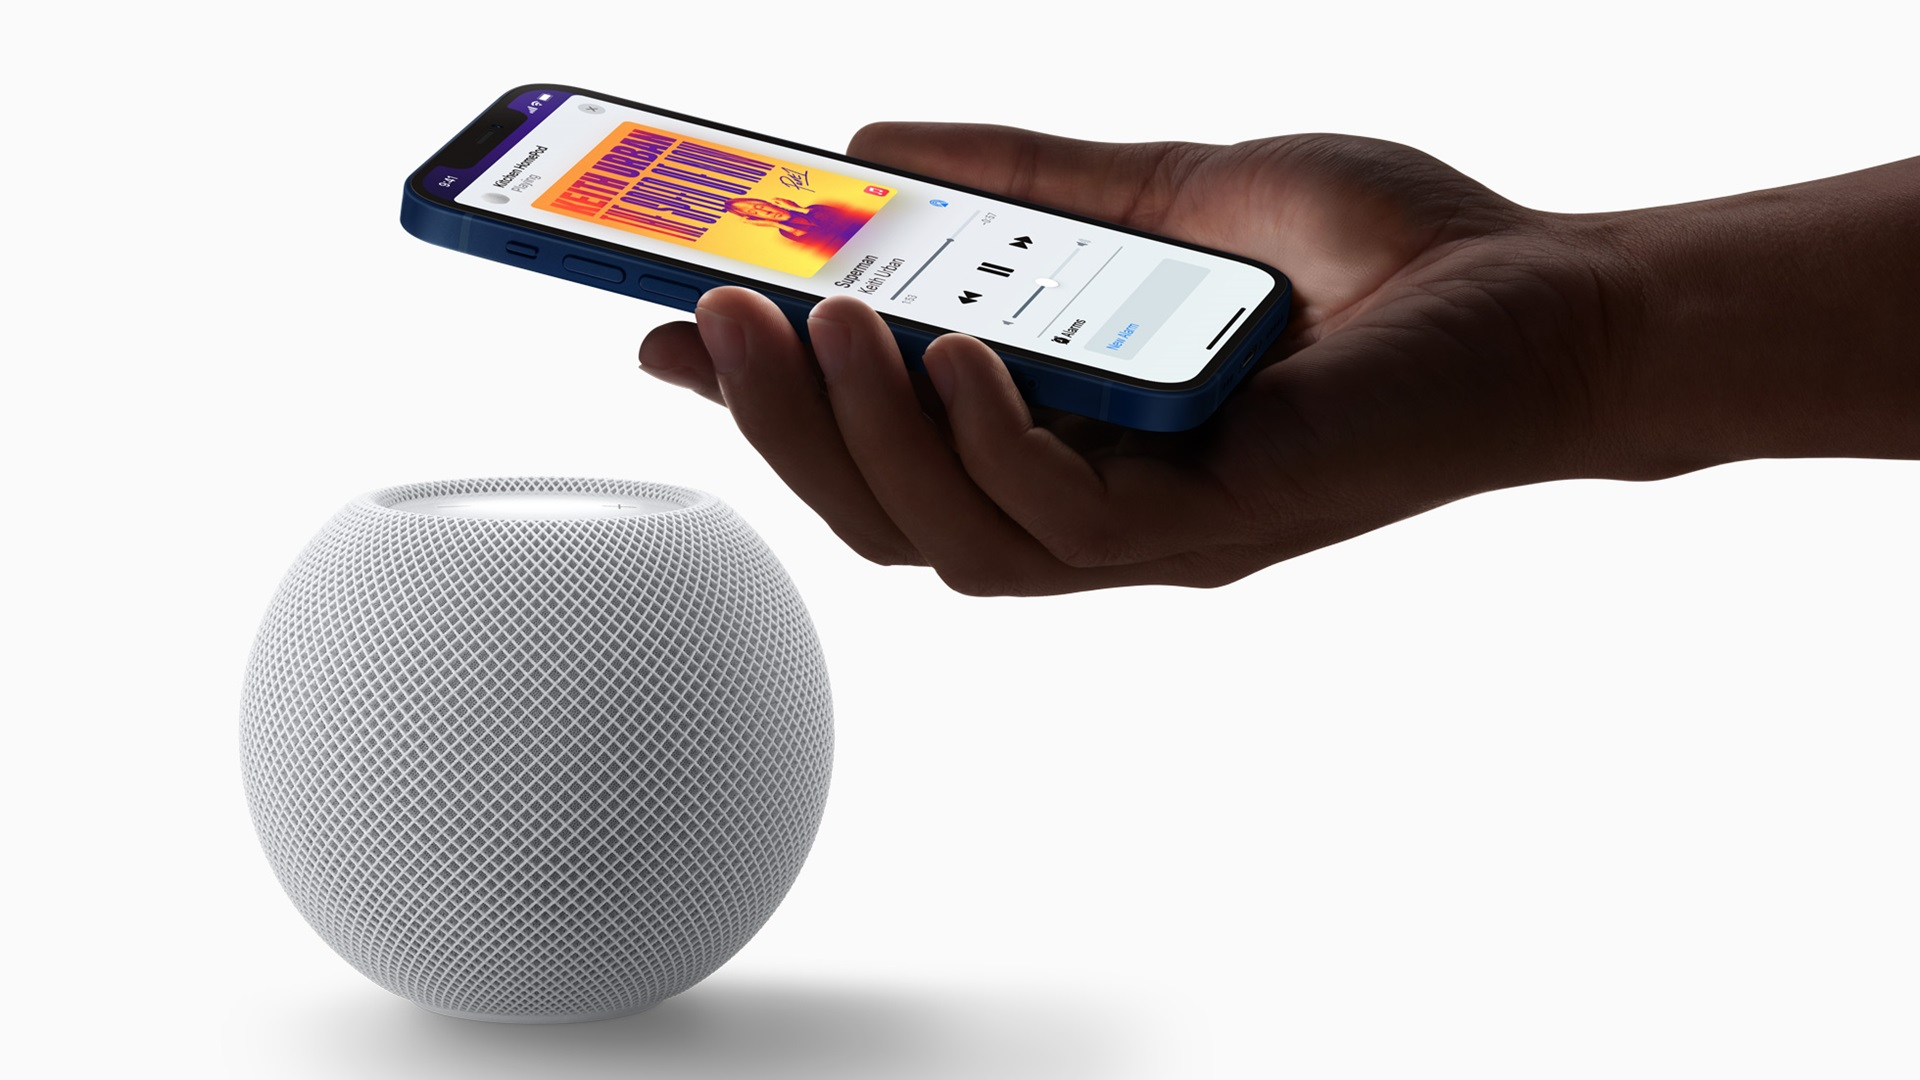 Apple unveils $99 HomePod Mini smart speaker